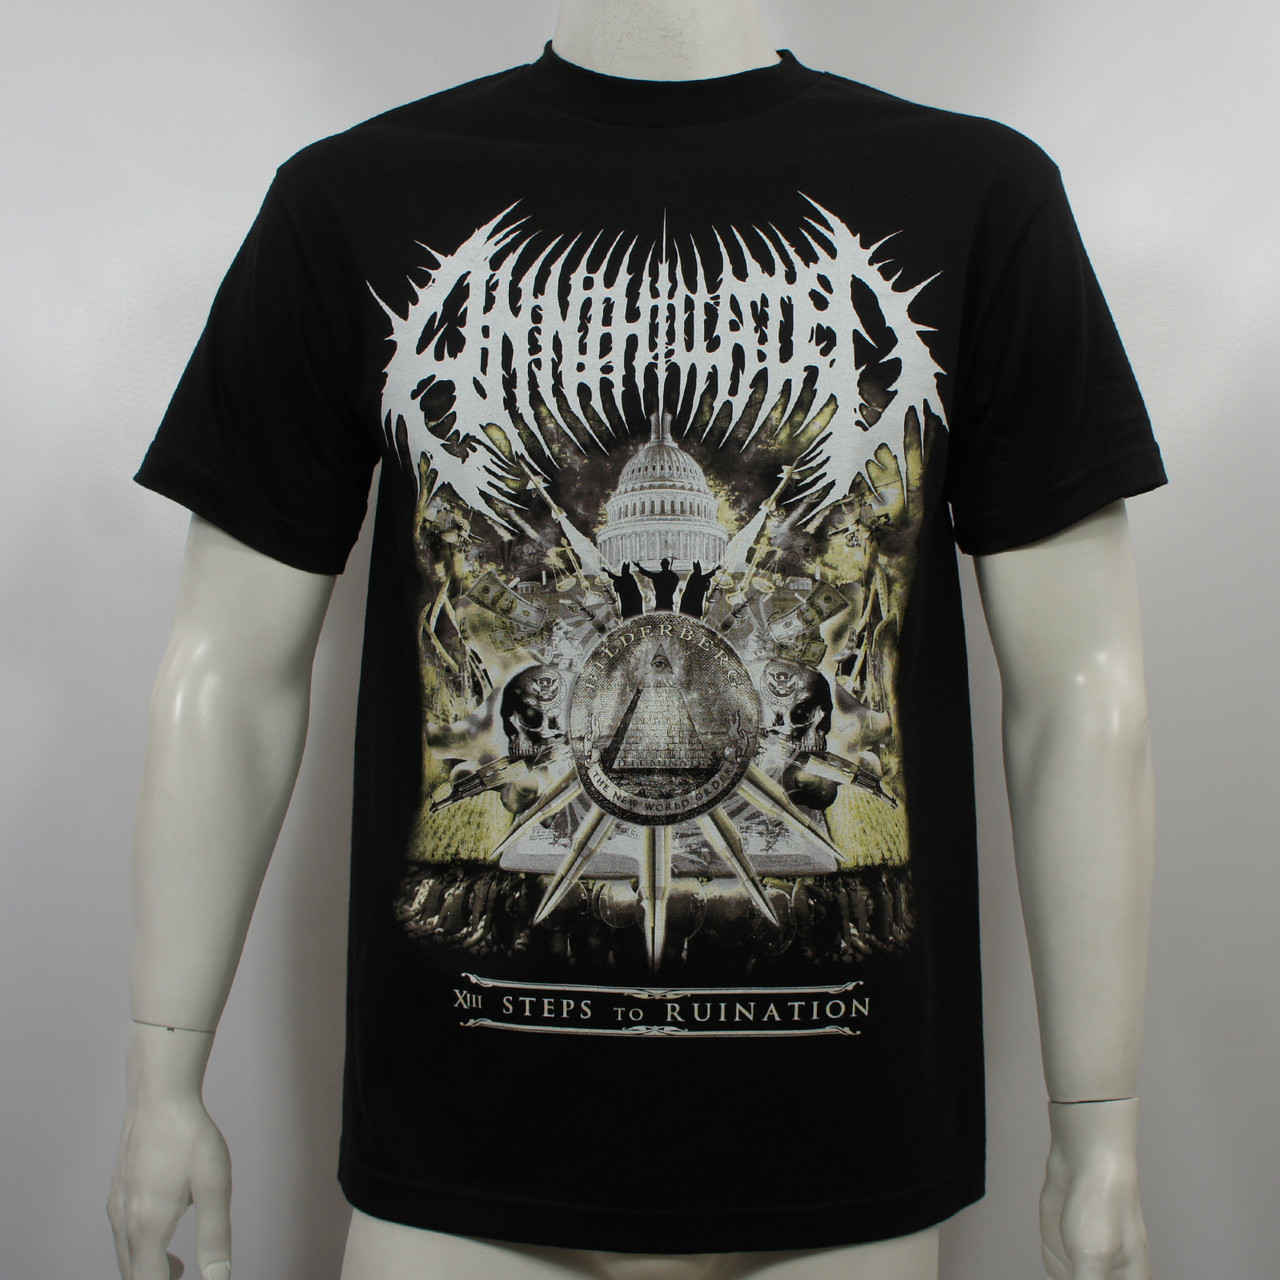 http://d3d71ba2asa5oz.cloudfront.net/12013655/images/2820-annihalator-xiii-steps-to-ruination-t-shirt-black-(2).jpg